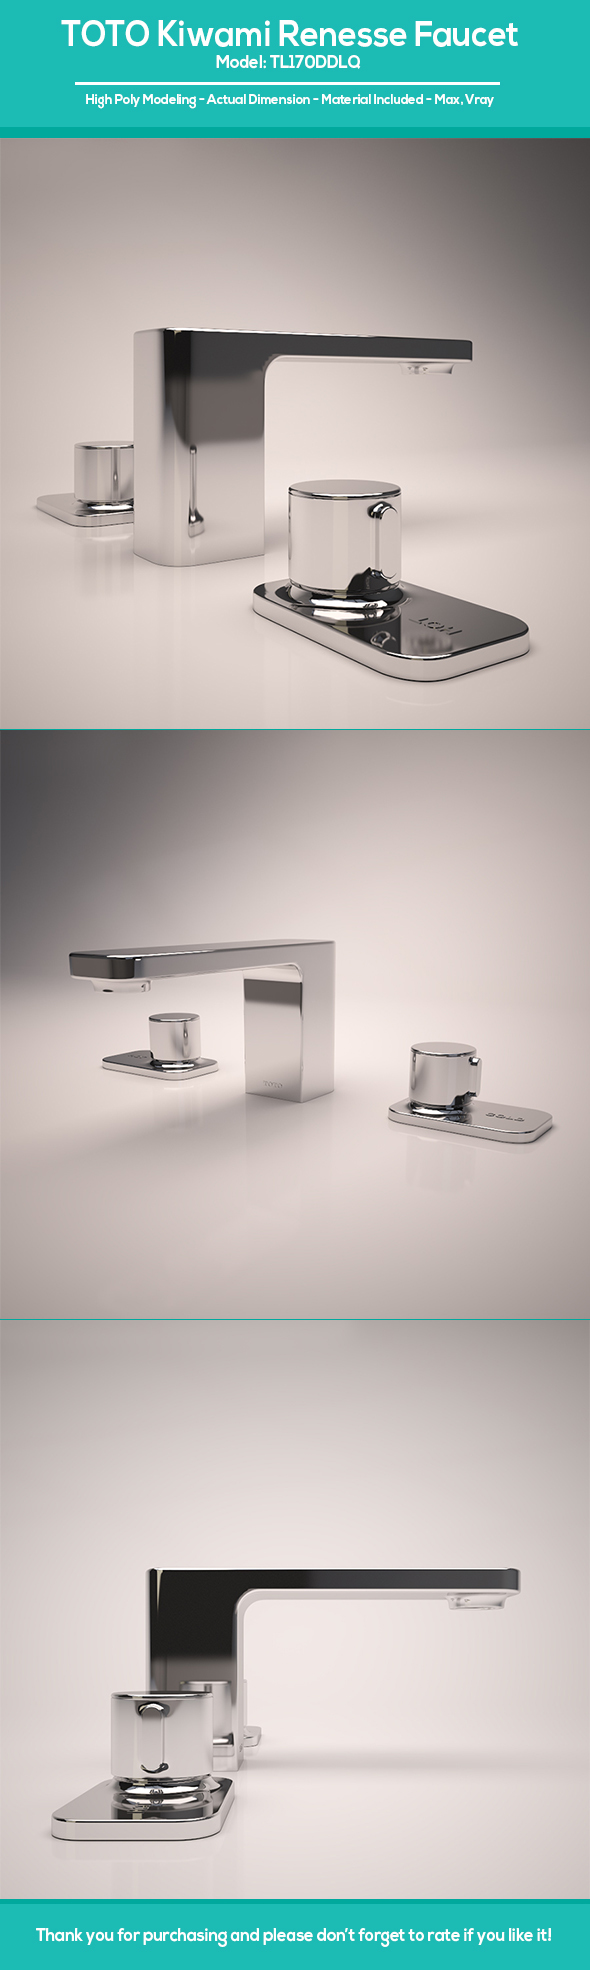 TOTO Kiwami Renesse Faucet - 3DOcean Item for Sale